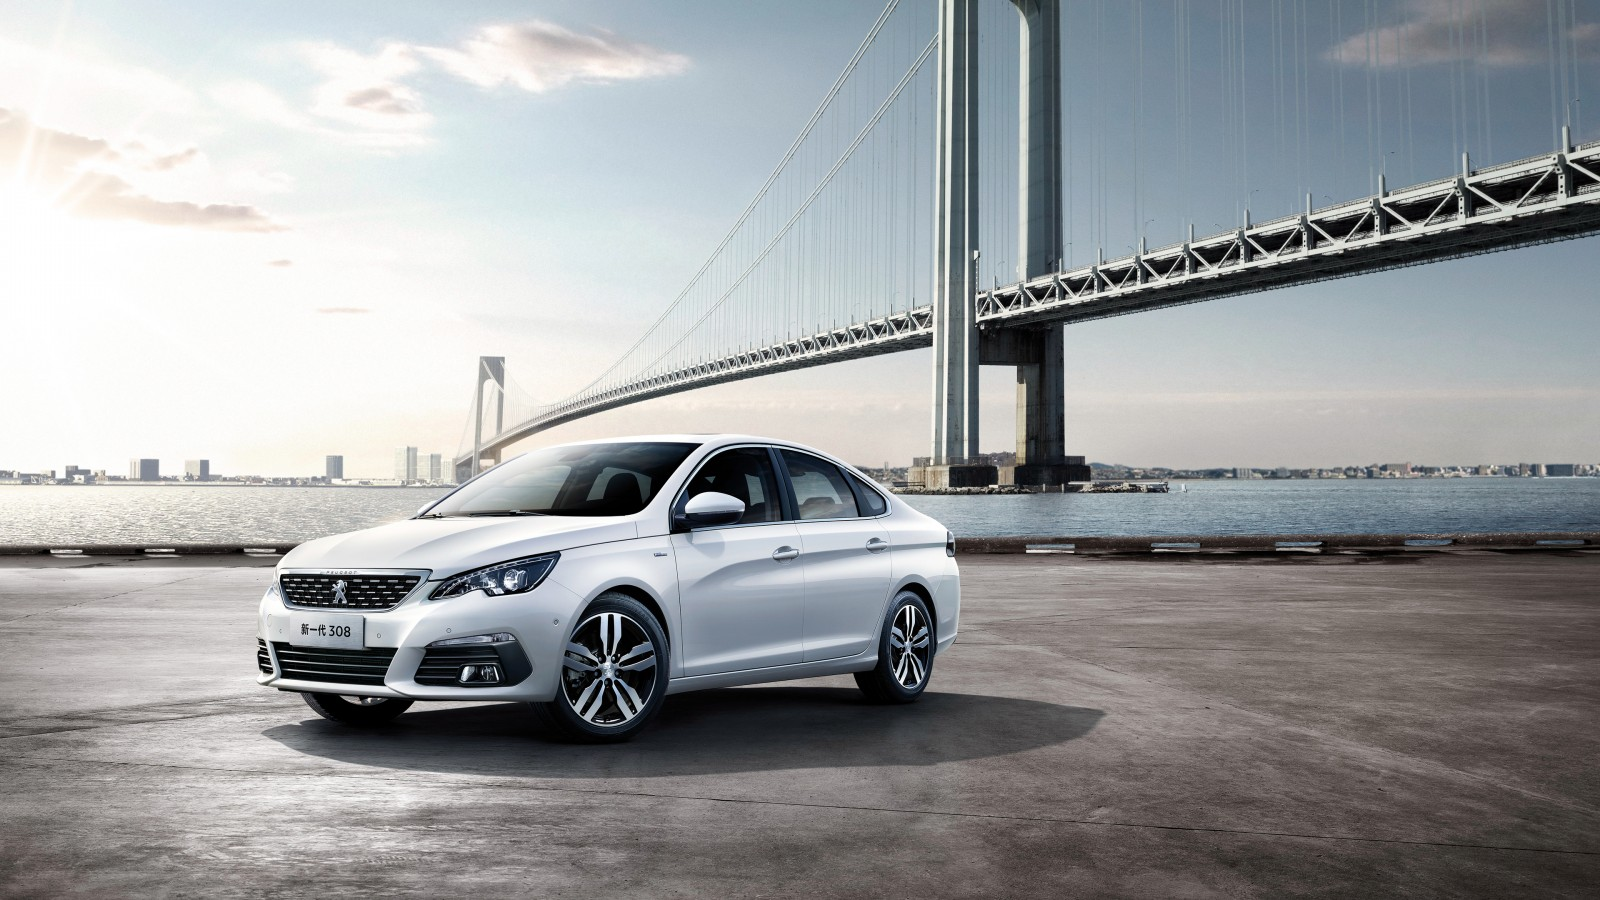 Hd Car Wallpapers For Android Tablets 2016 Peugeot 308 Wallpaper Hd Car Wallpapers Id 6834